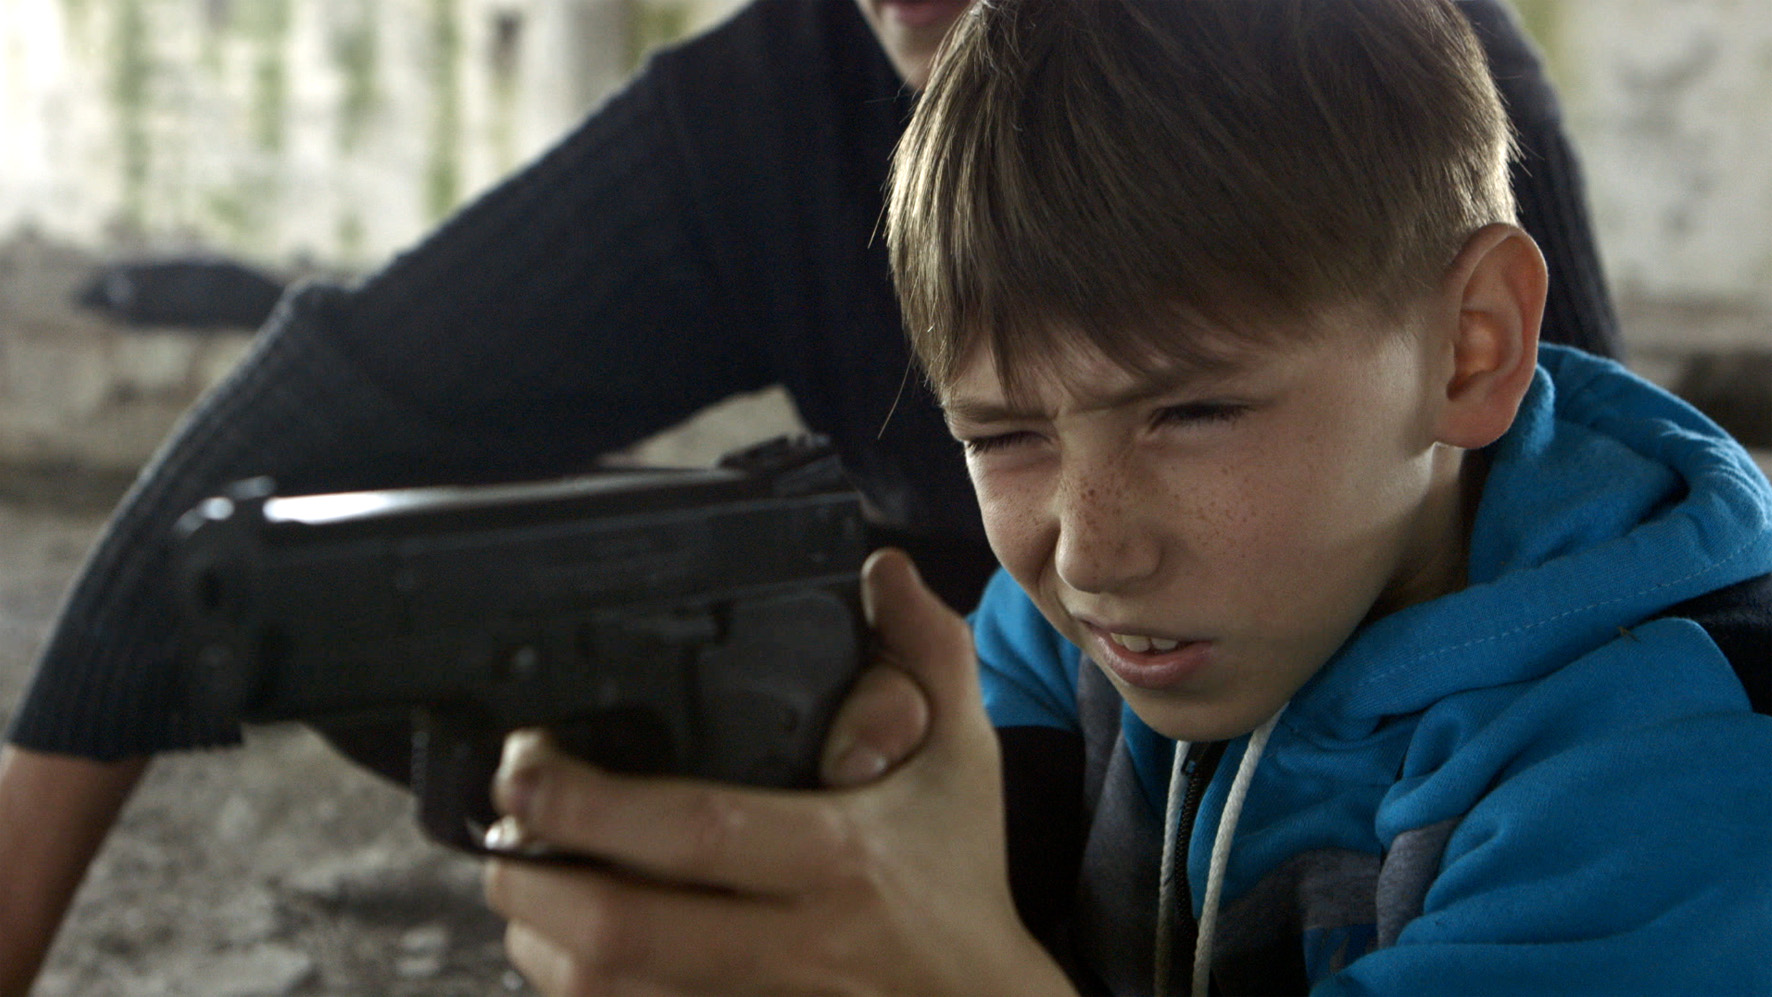 10-year-old Oleg's innocence is eroded by his family's position on the frontline of hostilities between Russia and Ukraine in Simon Lereng Wilmont's  The Distant Barking of Dogs.